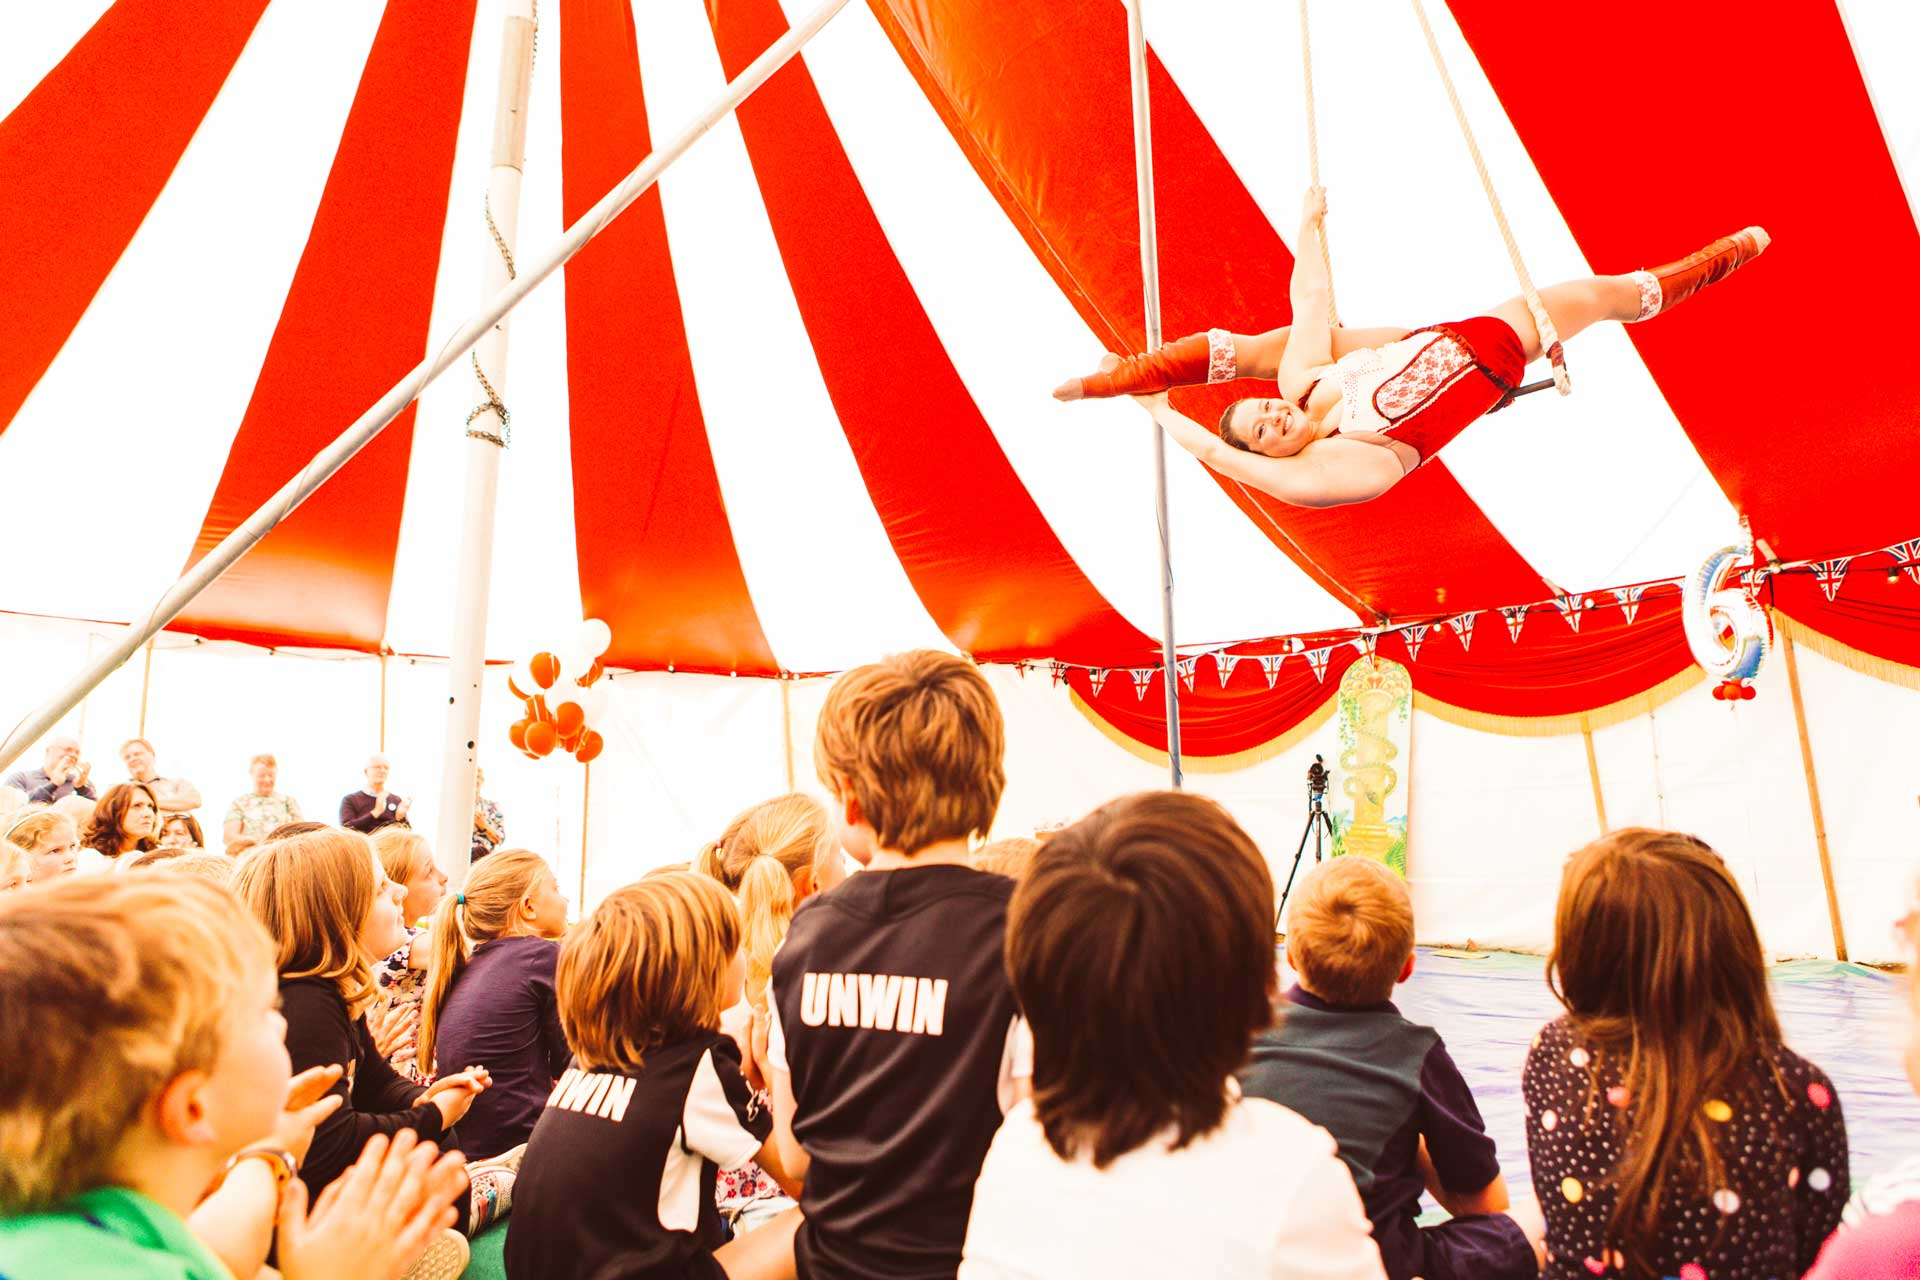 Performing a circus act